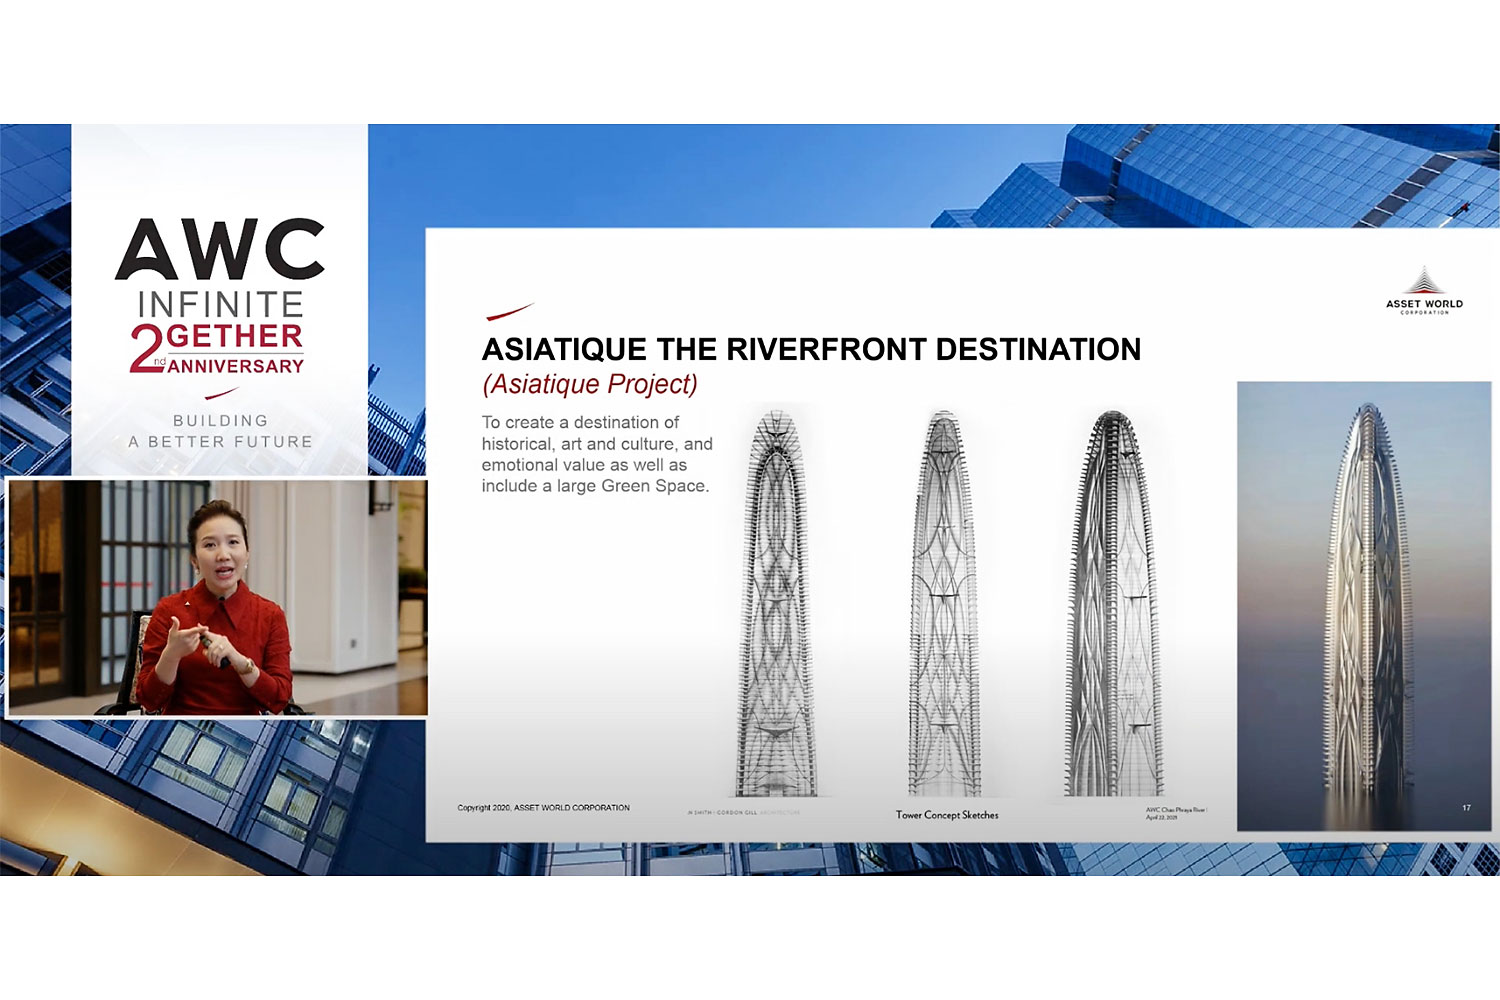 AWC opts to reposition 3 mega-projects